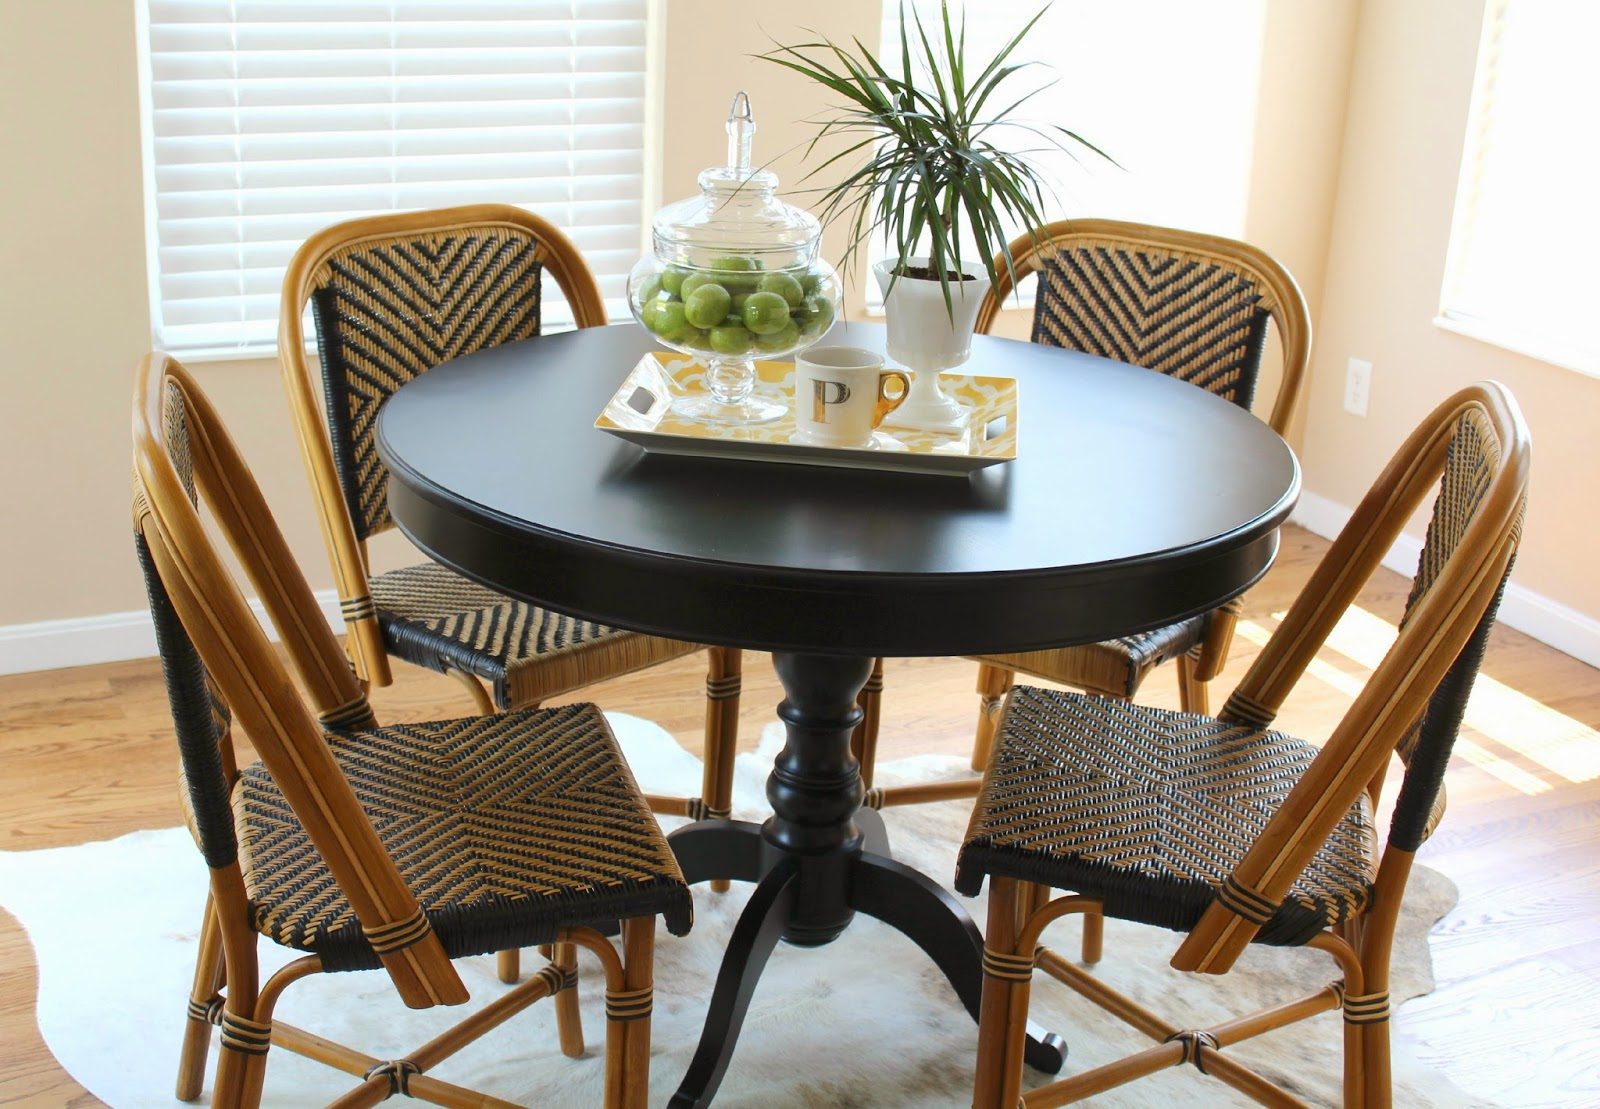 Talk About The Deal Of The Century For An Entire Dining Set From Ballard  Designs.